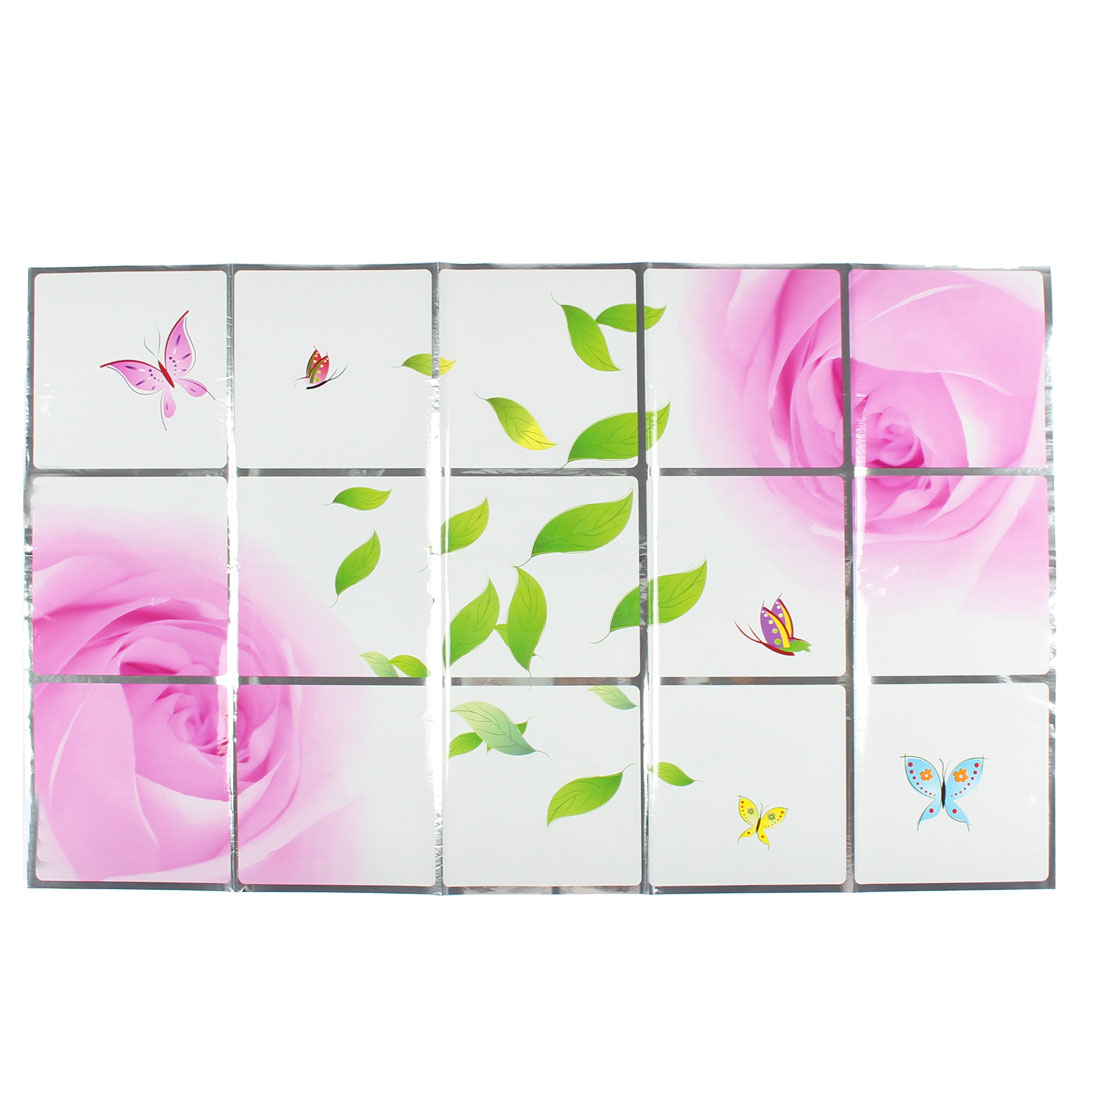 Kitchen Rose Pattern Removable Self-adhesive Oilproof Wall Window Sticker 75 x 45cm